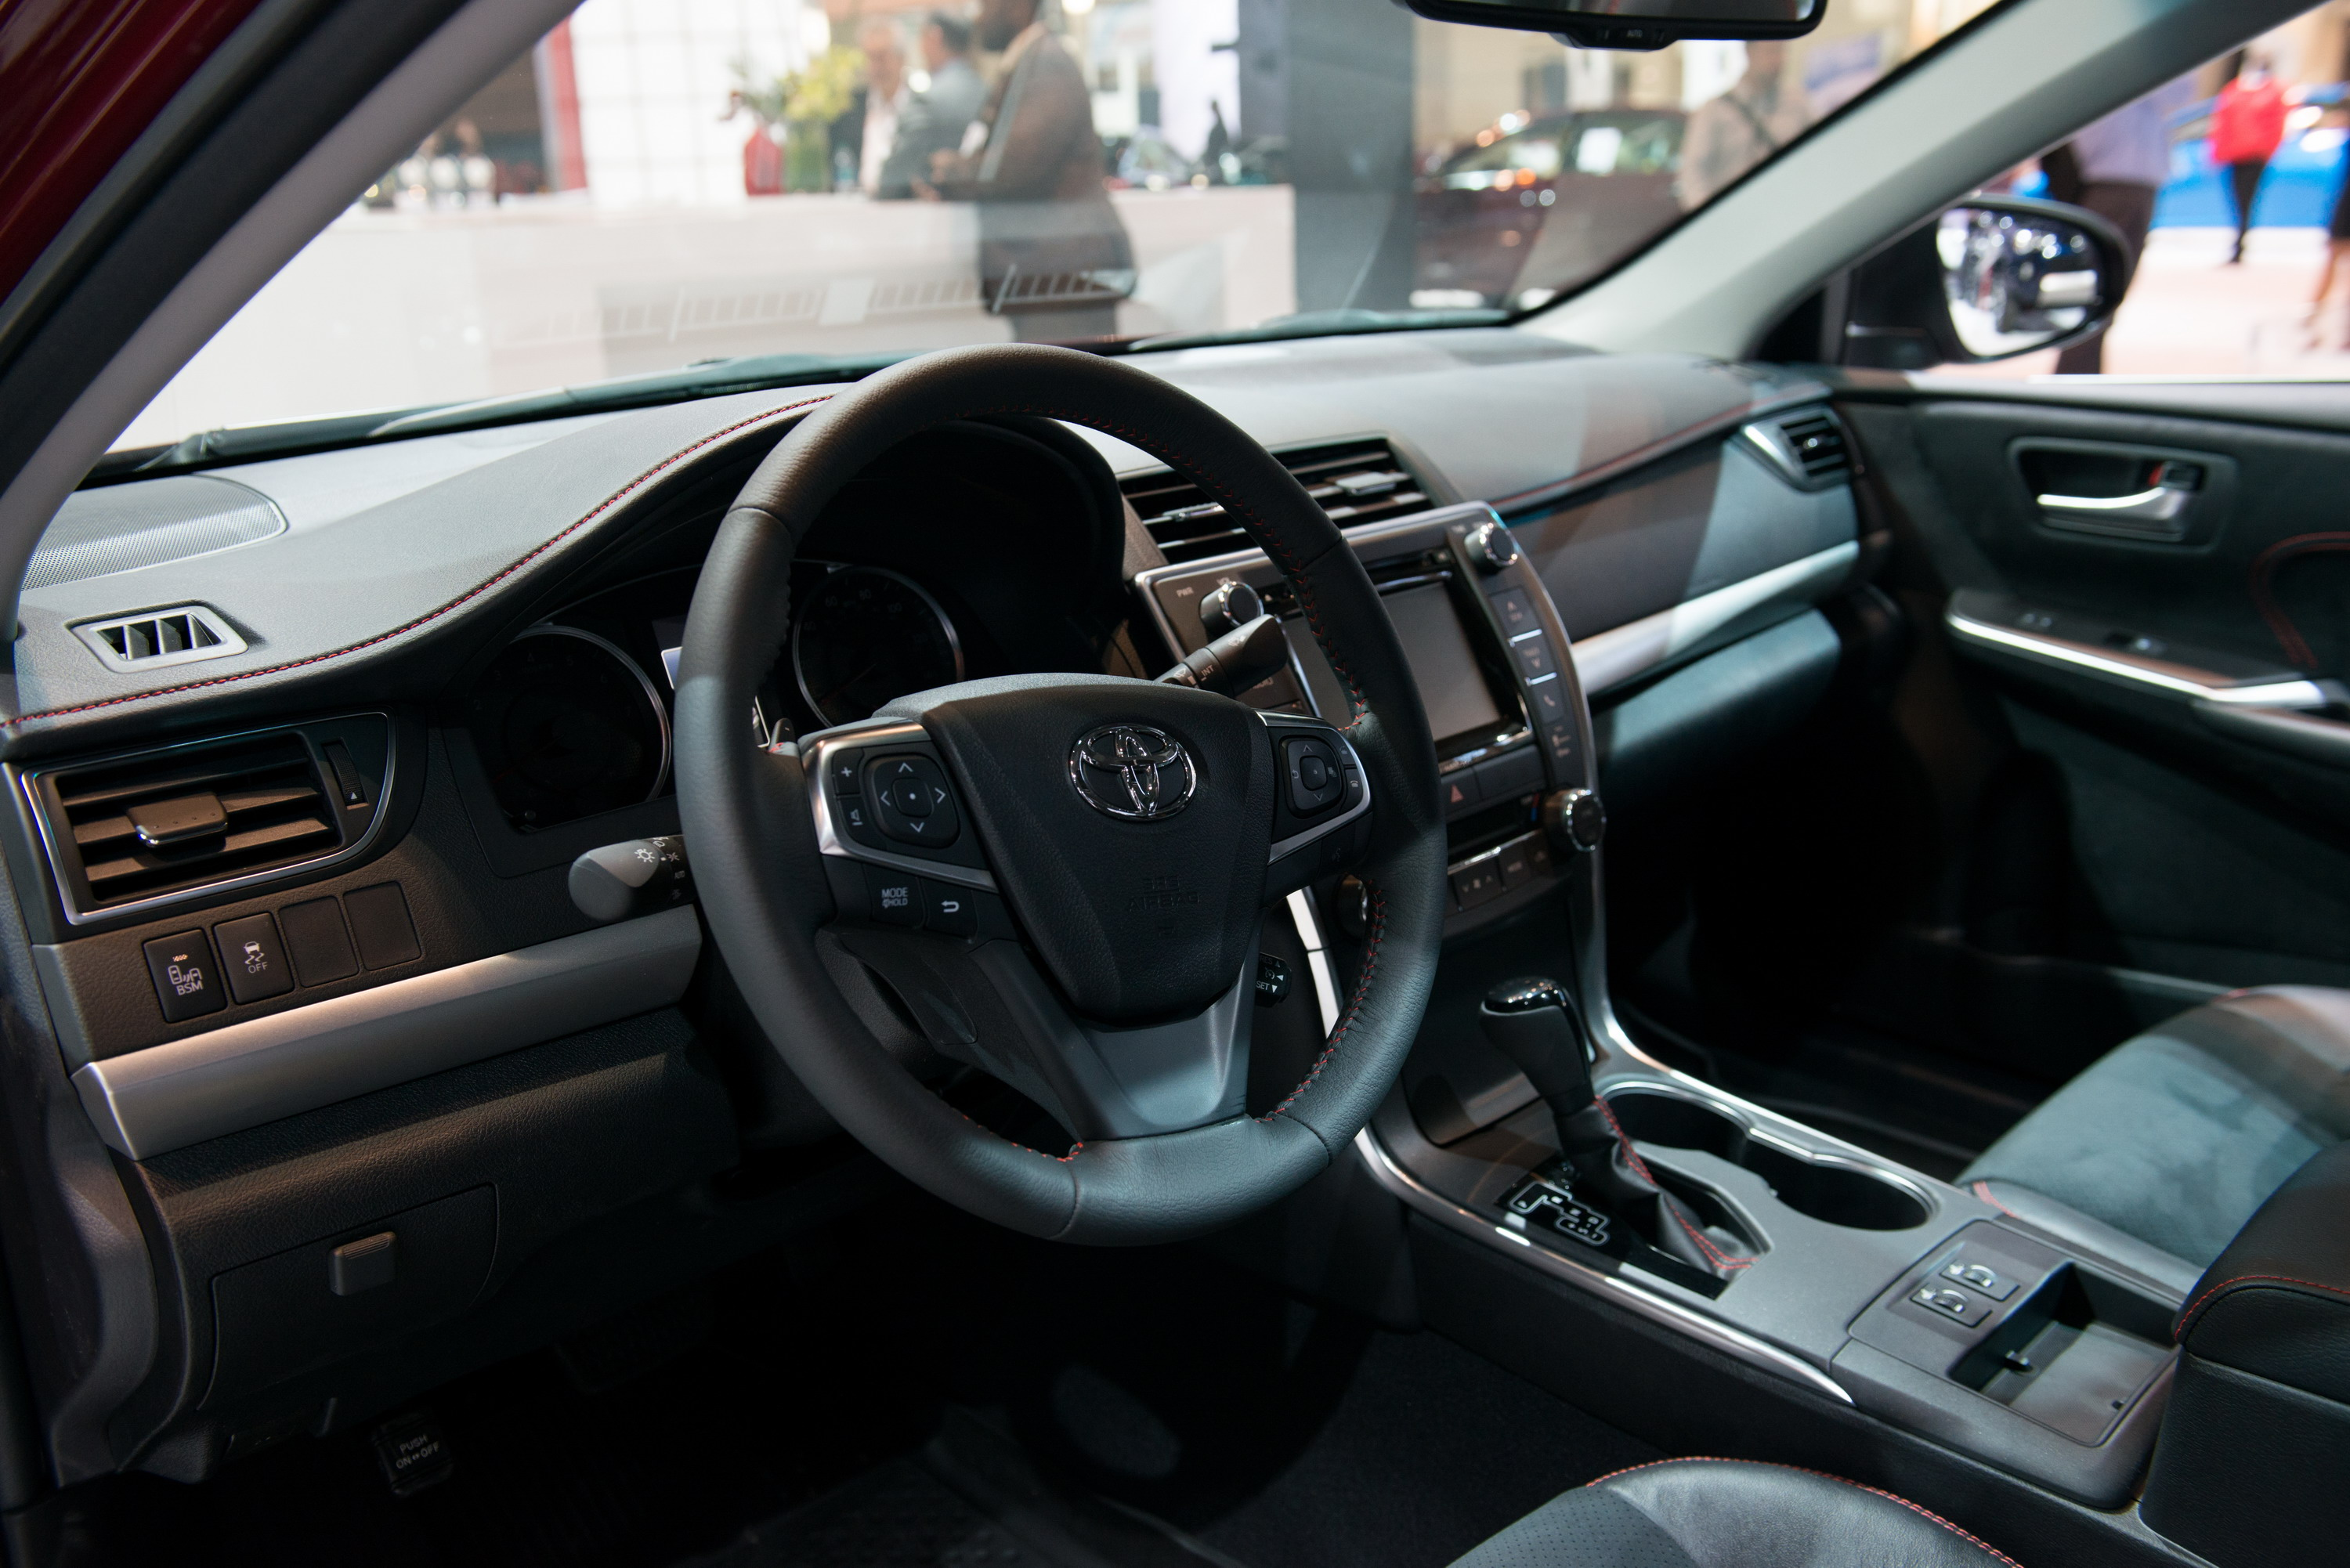 Toyota Camry: Changing shift ranges in S mode